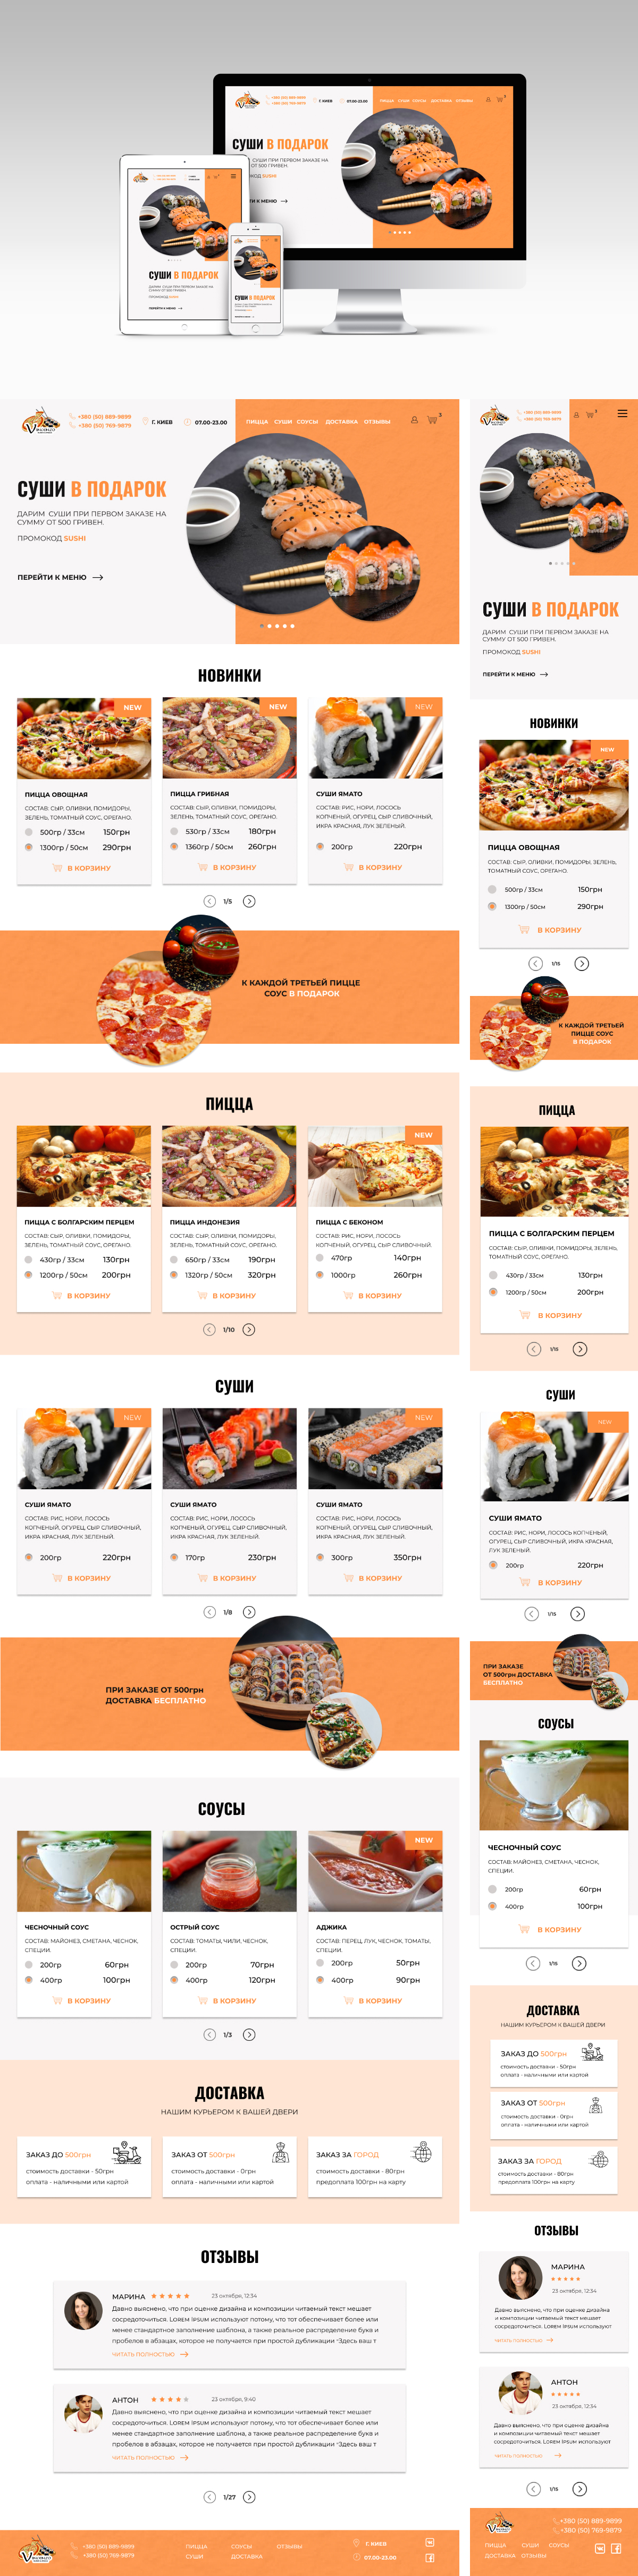 E-commerce, Catering Figma Template